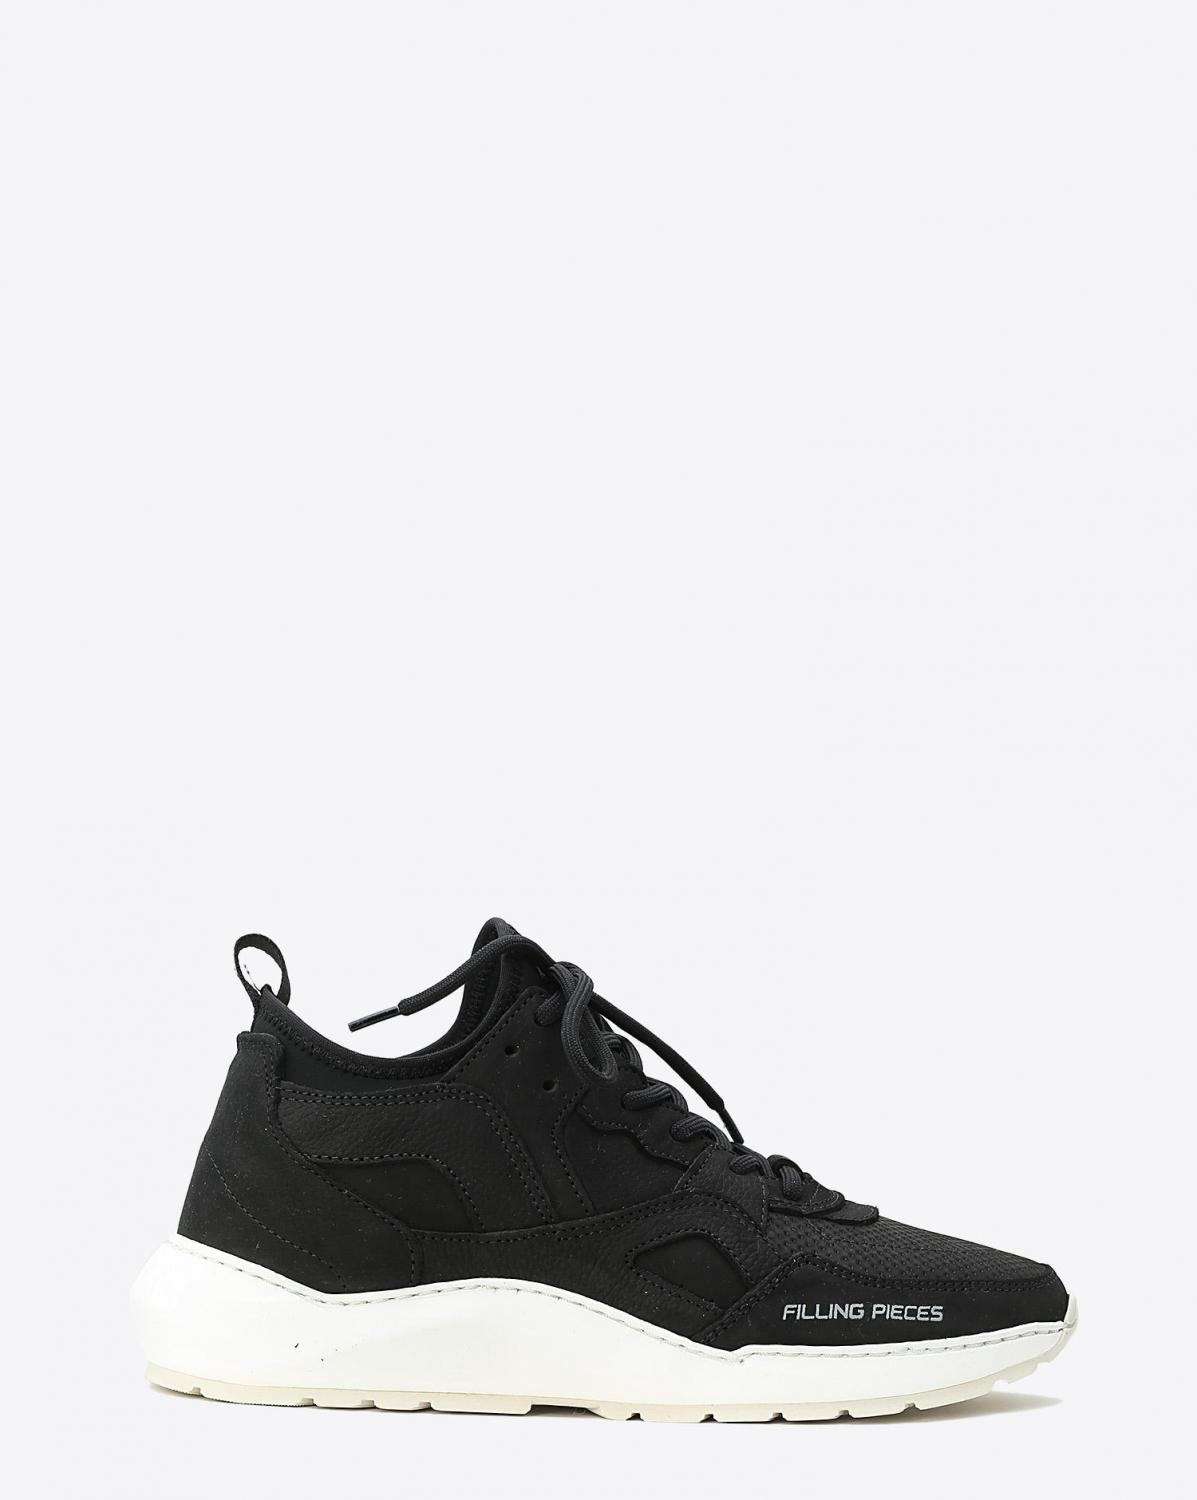 Filling Pieces Sneakers Fence Origin Low Arch Runner Fence All Black Black